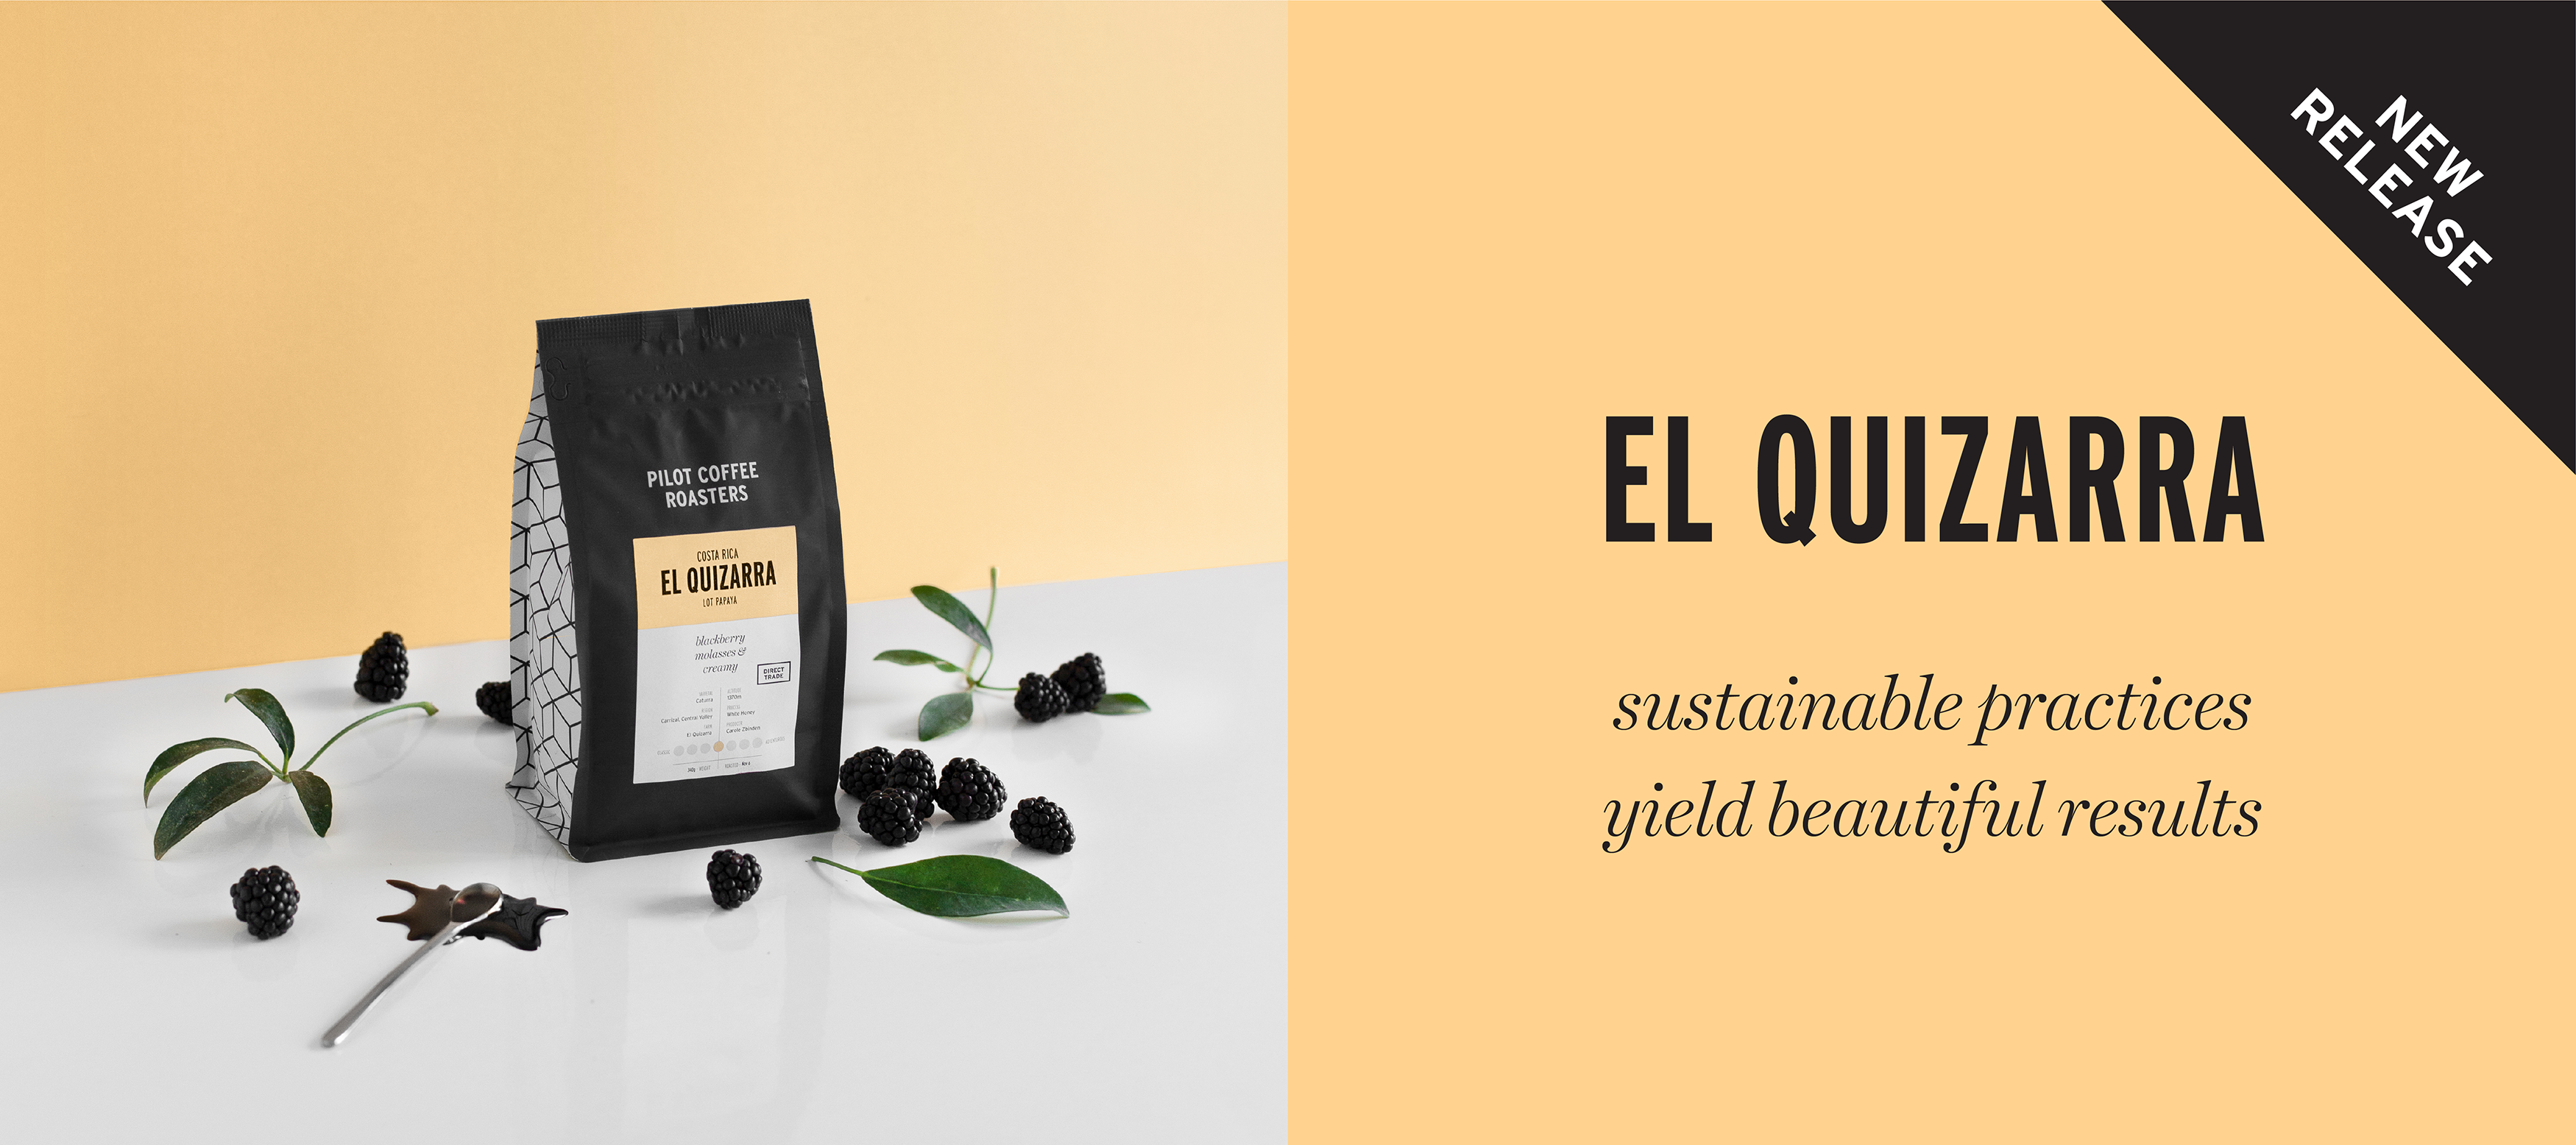 Newest release, El Quizarra from Costa Rica. Sustainable practices yield beautiful results